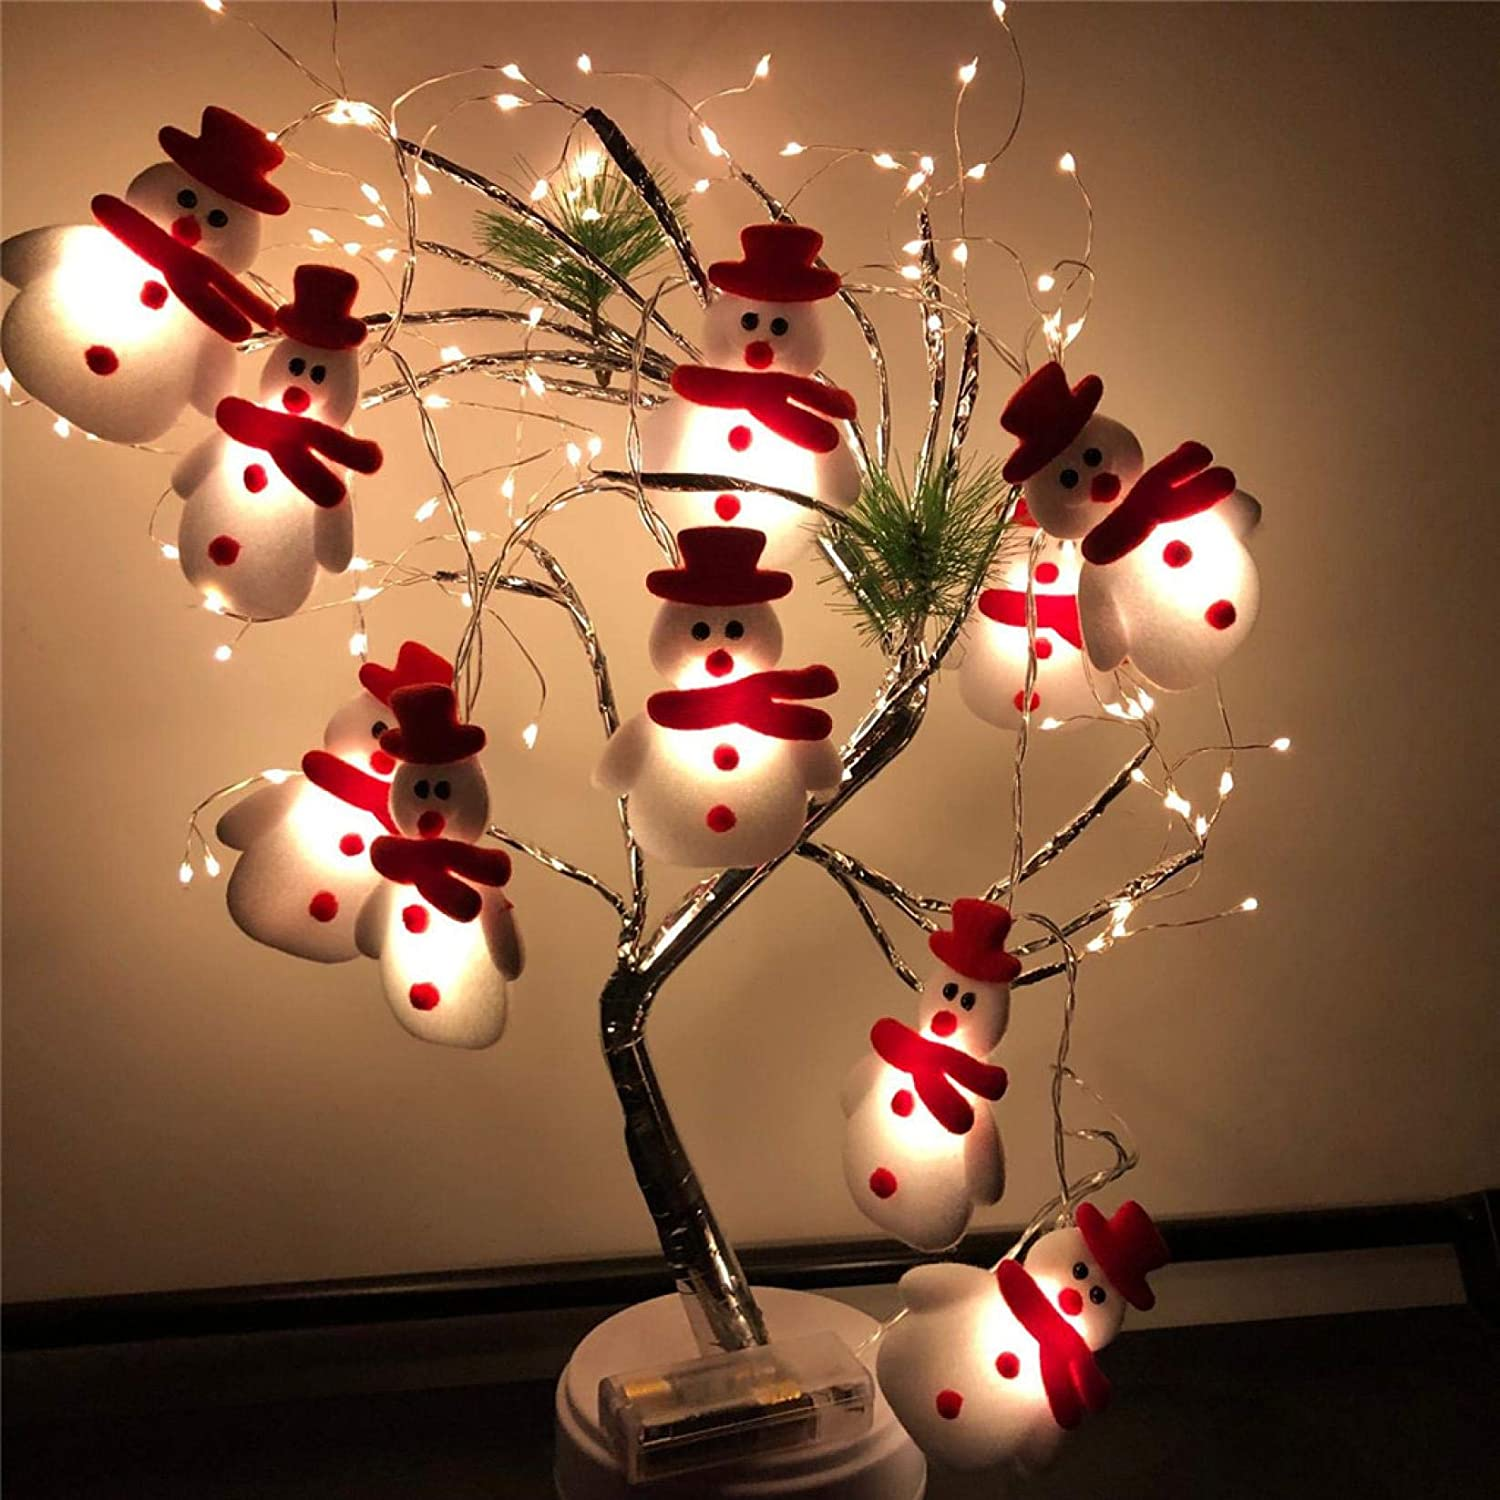 Gottifusion LED Christmas Snowman Strings Christmas Tree Holiday Party Decoration Lantern for Party Indoor Outdoor Lights Decor.Santa Claus String Lights,Colorful Cute String Lights for Christmas